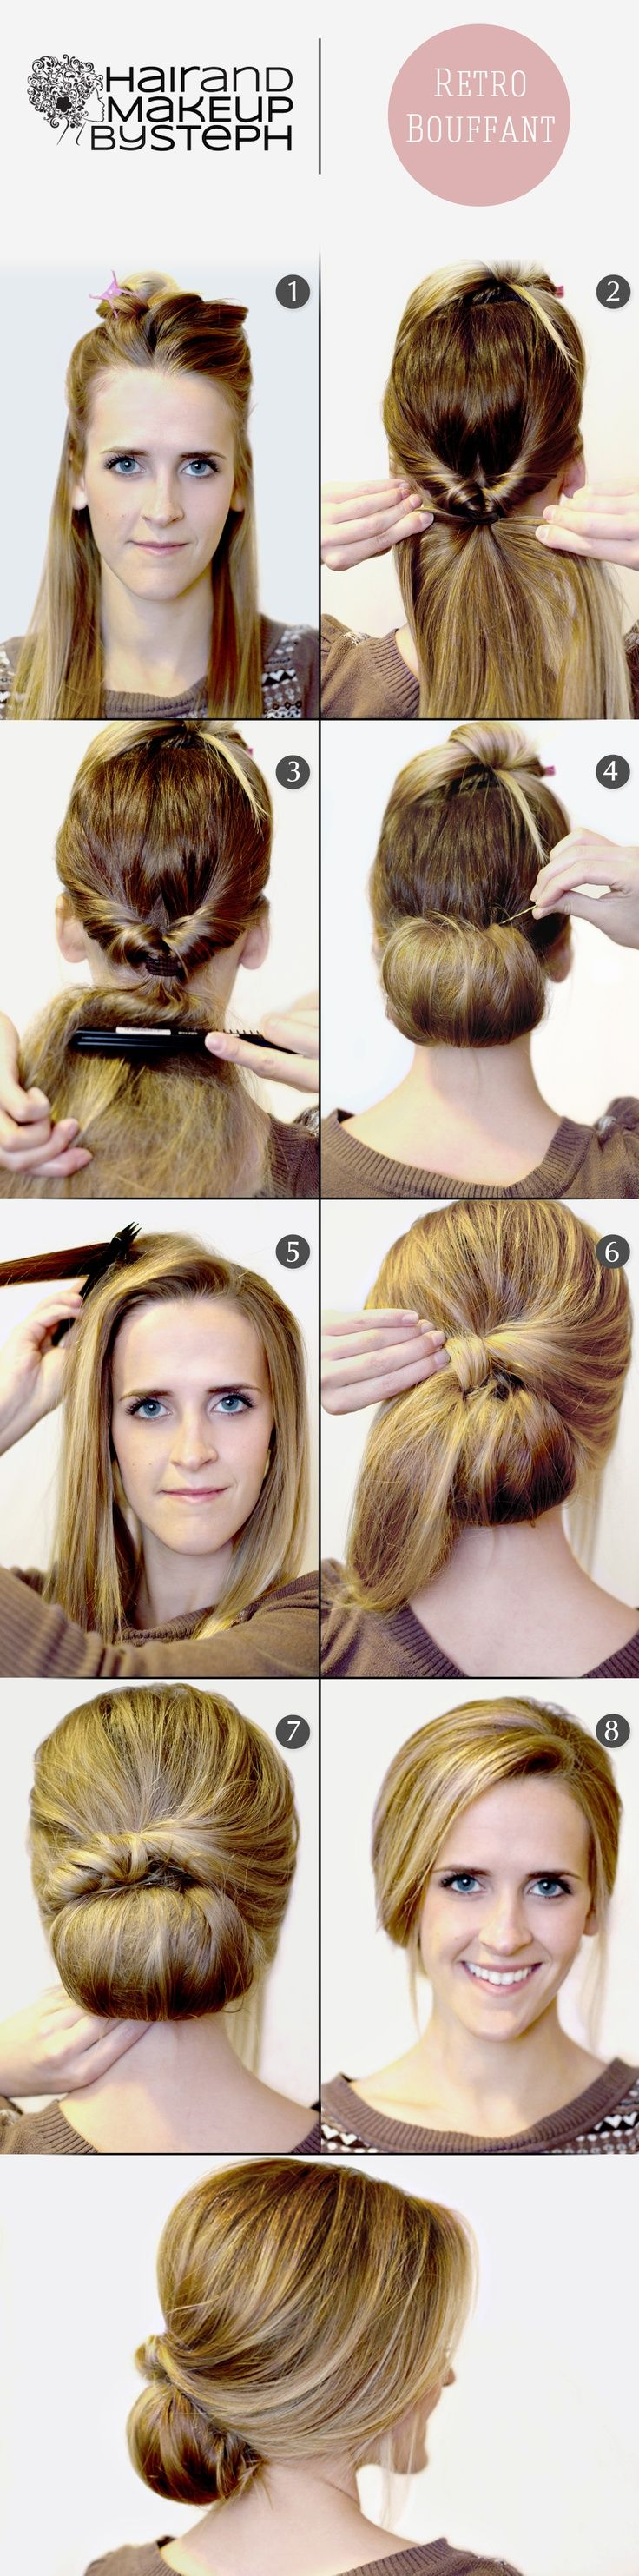 105 best Styling Bouffant images on Pinterest